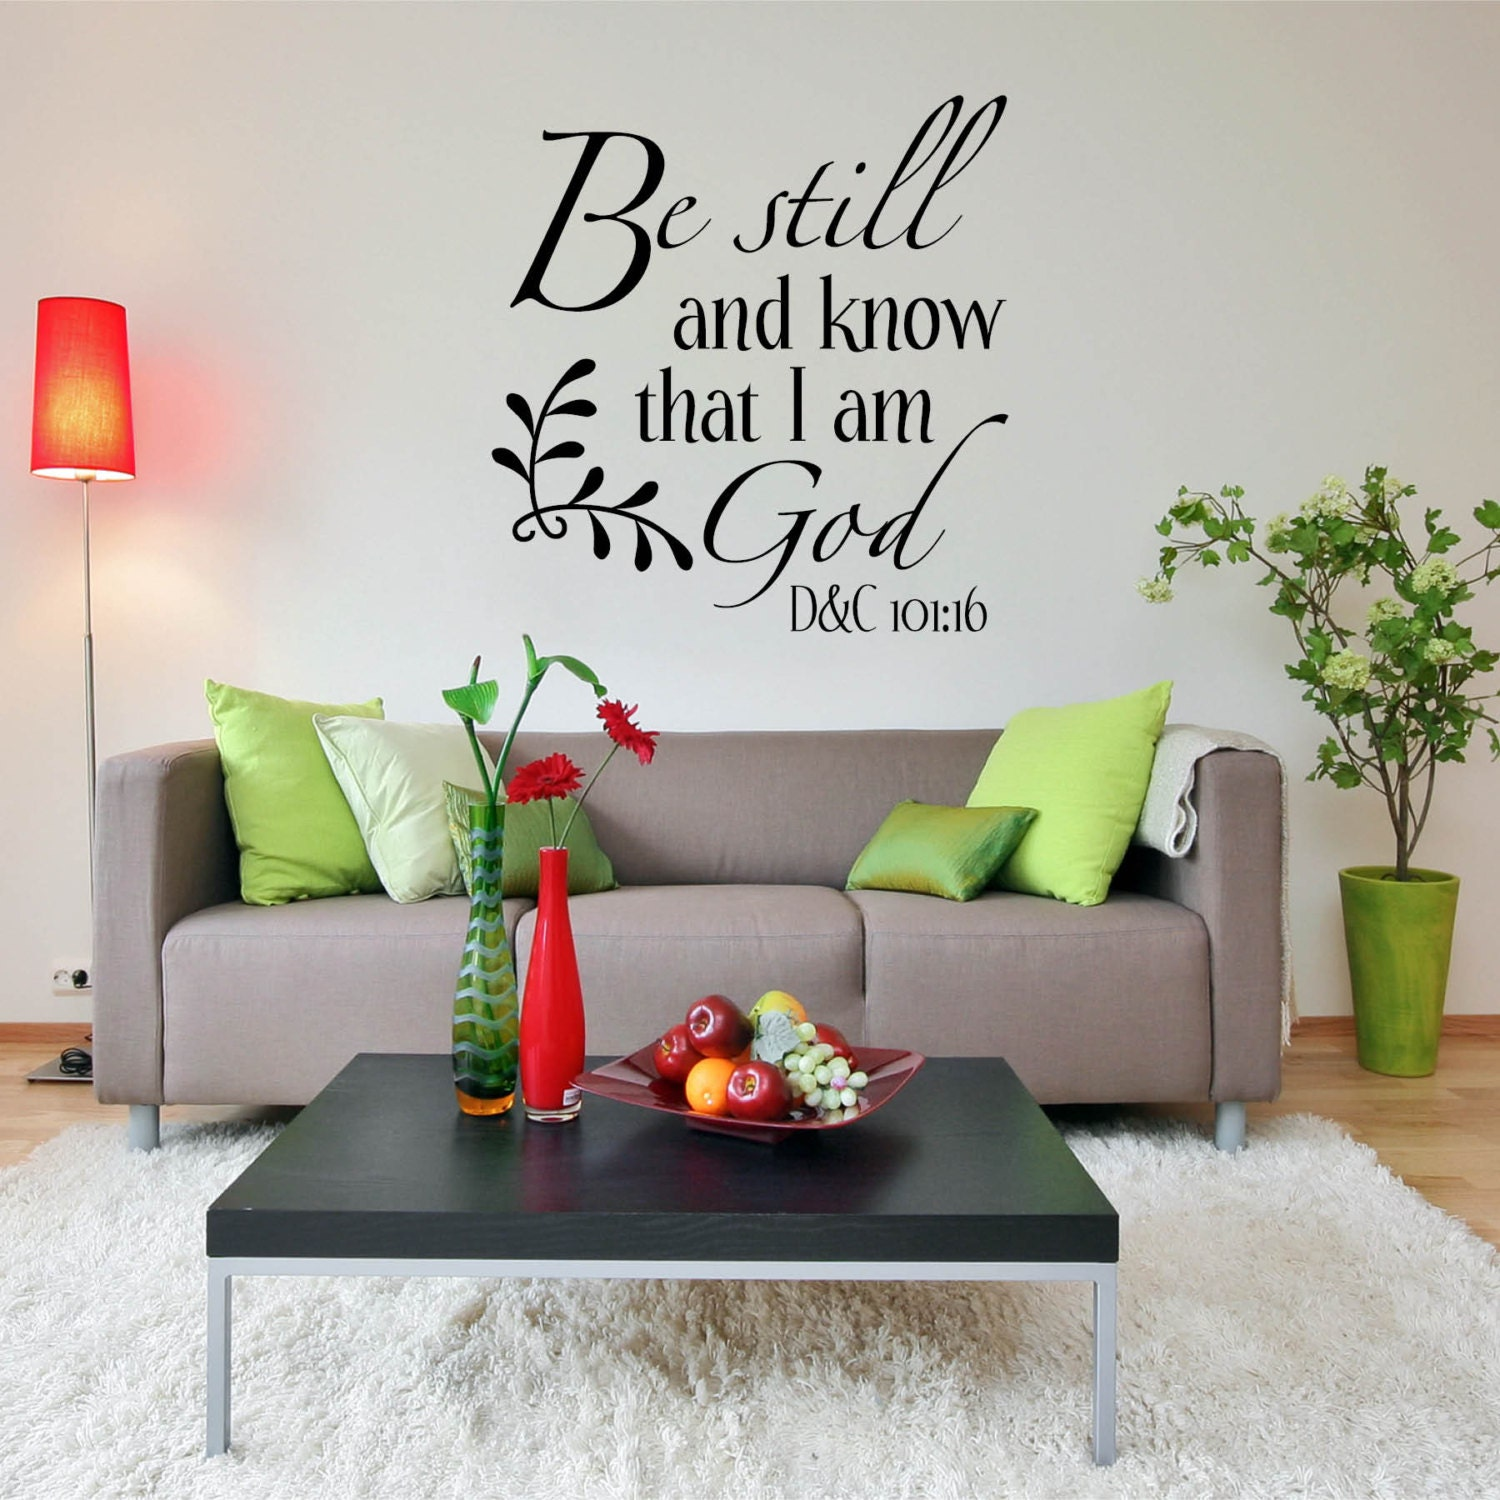 Religious wall decal quote dining room decor family room for Dining room wall quote decals